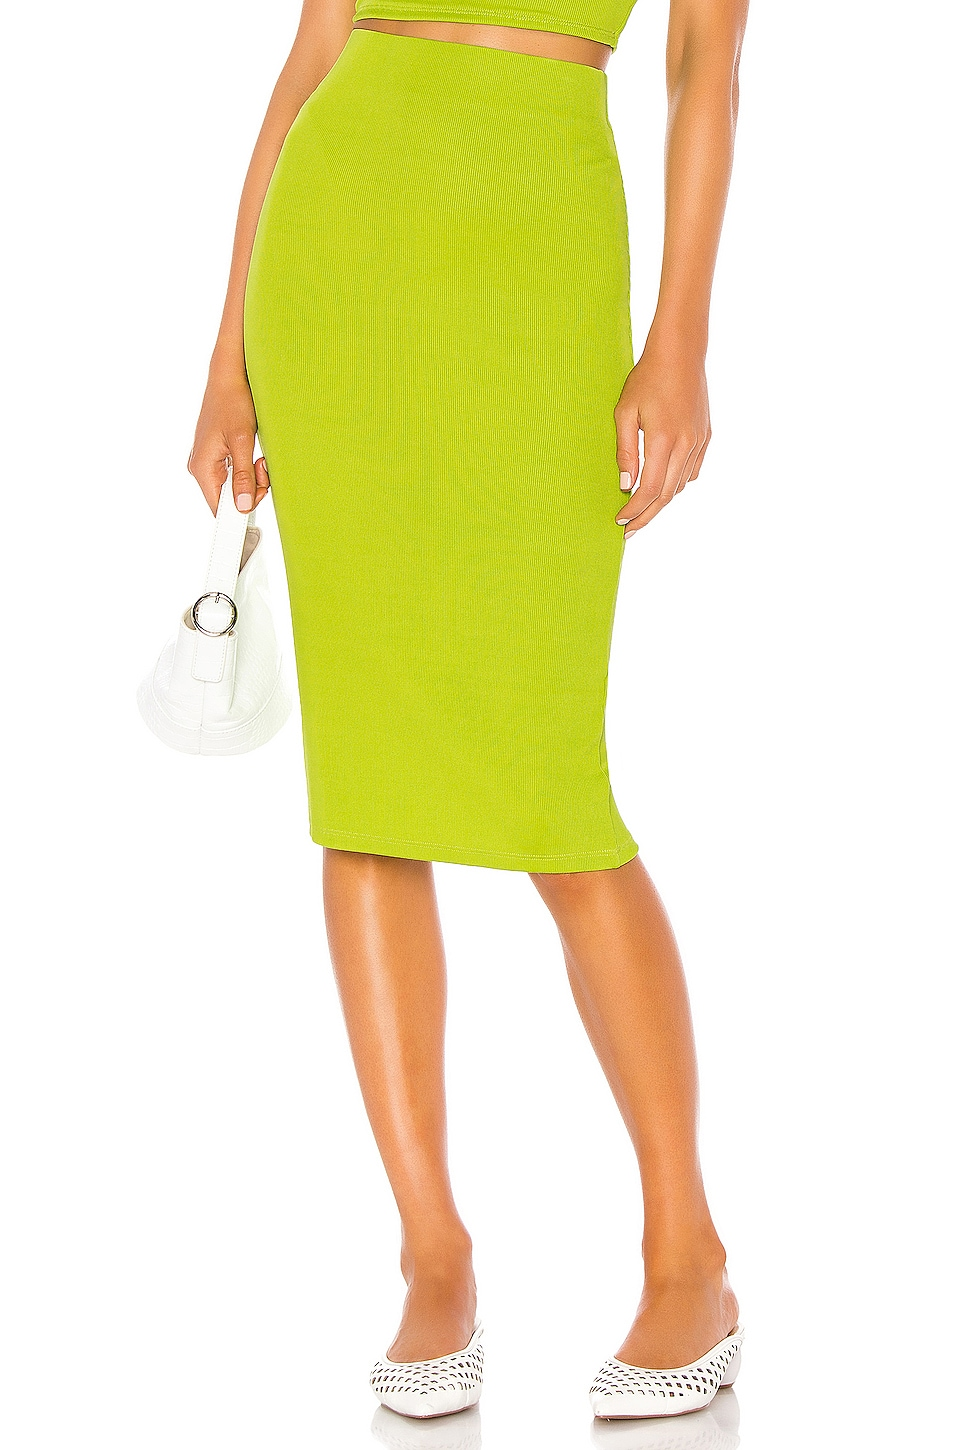 LPA Mirta Skirt in Lime Green